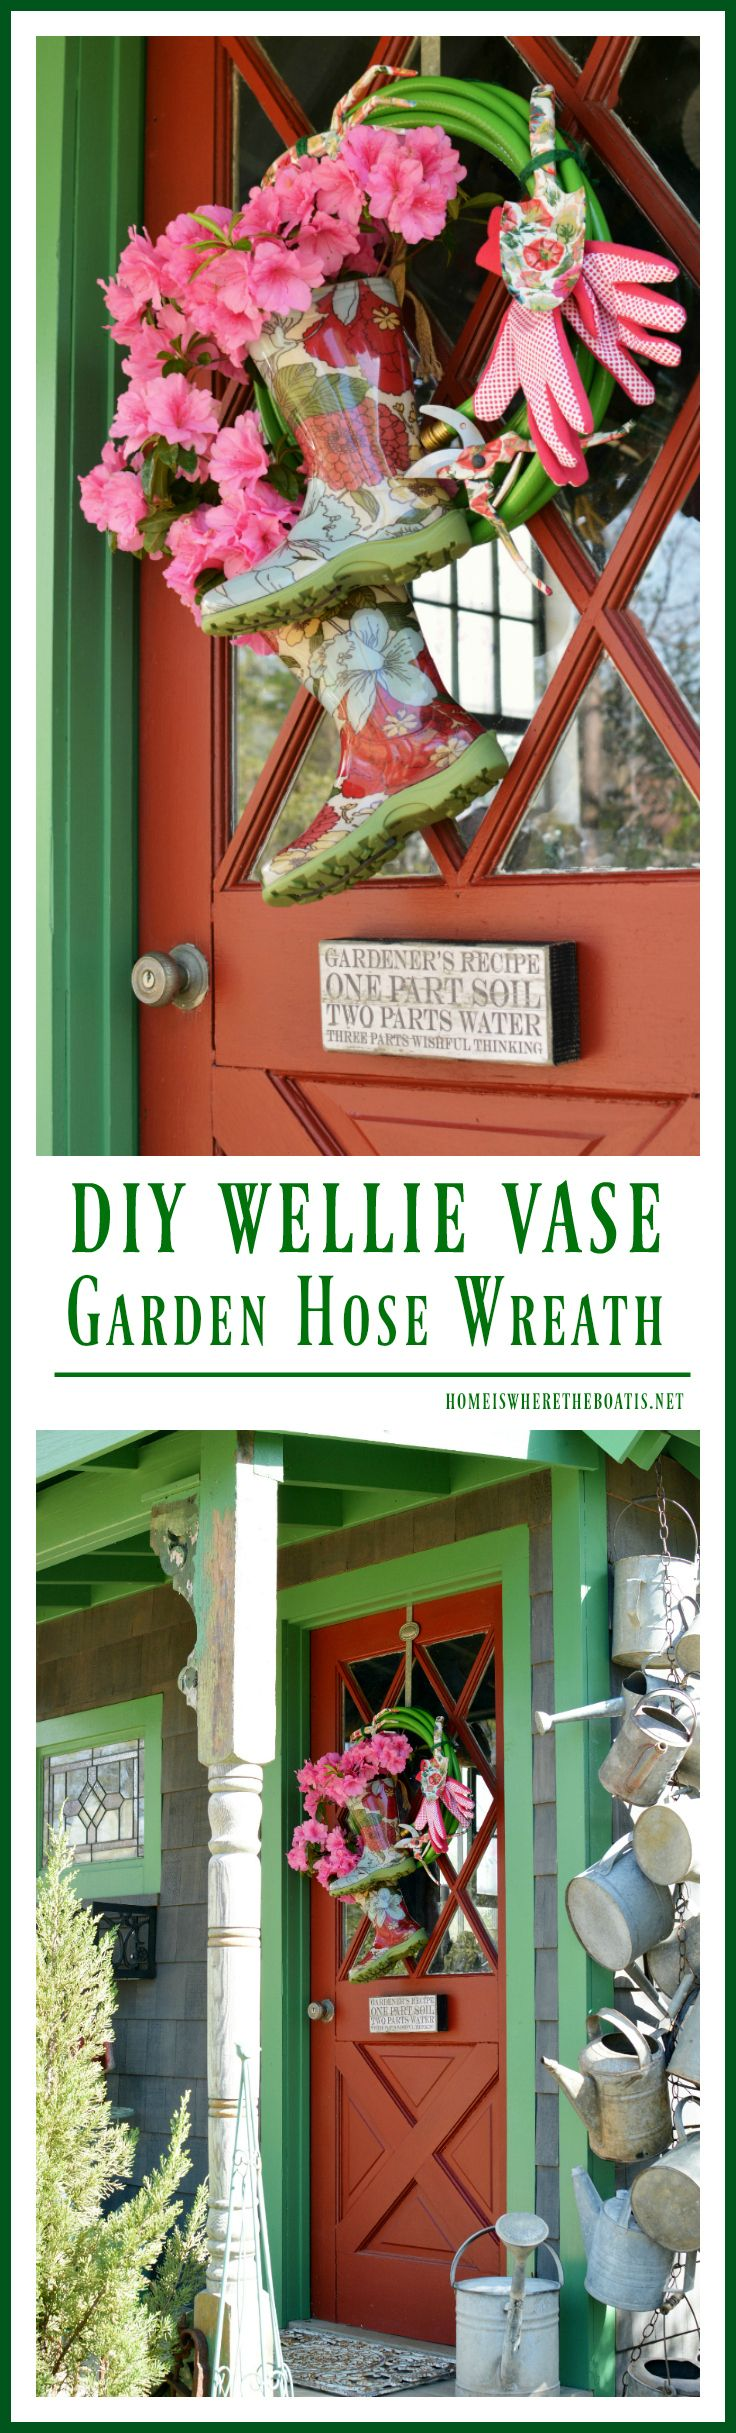 DIY: Growing a Garden Hose Wreath with Blooming Wellies | homeiswheretheboatis.net #pottingshed #spring